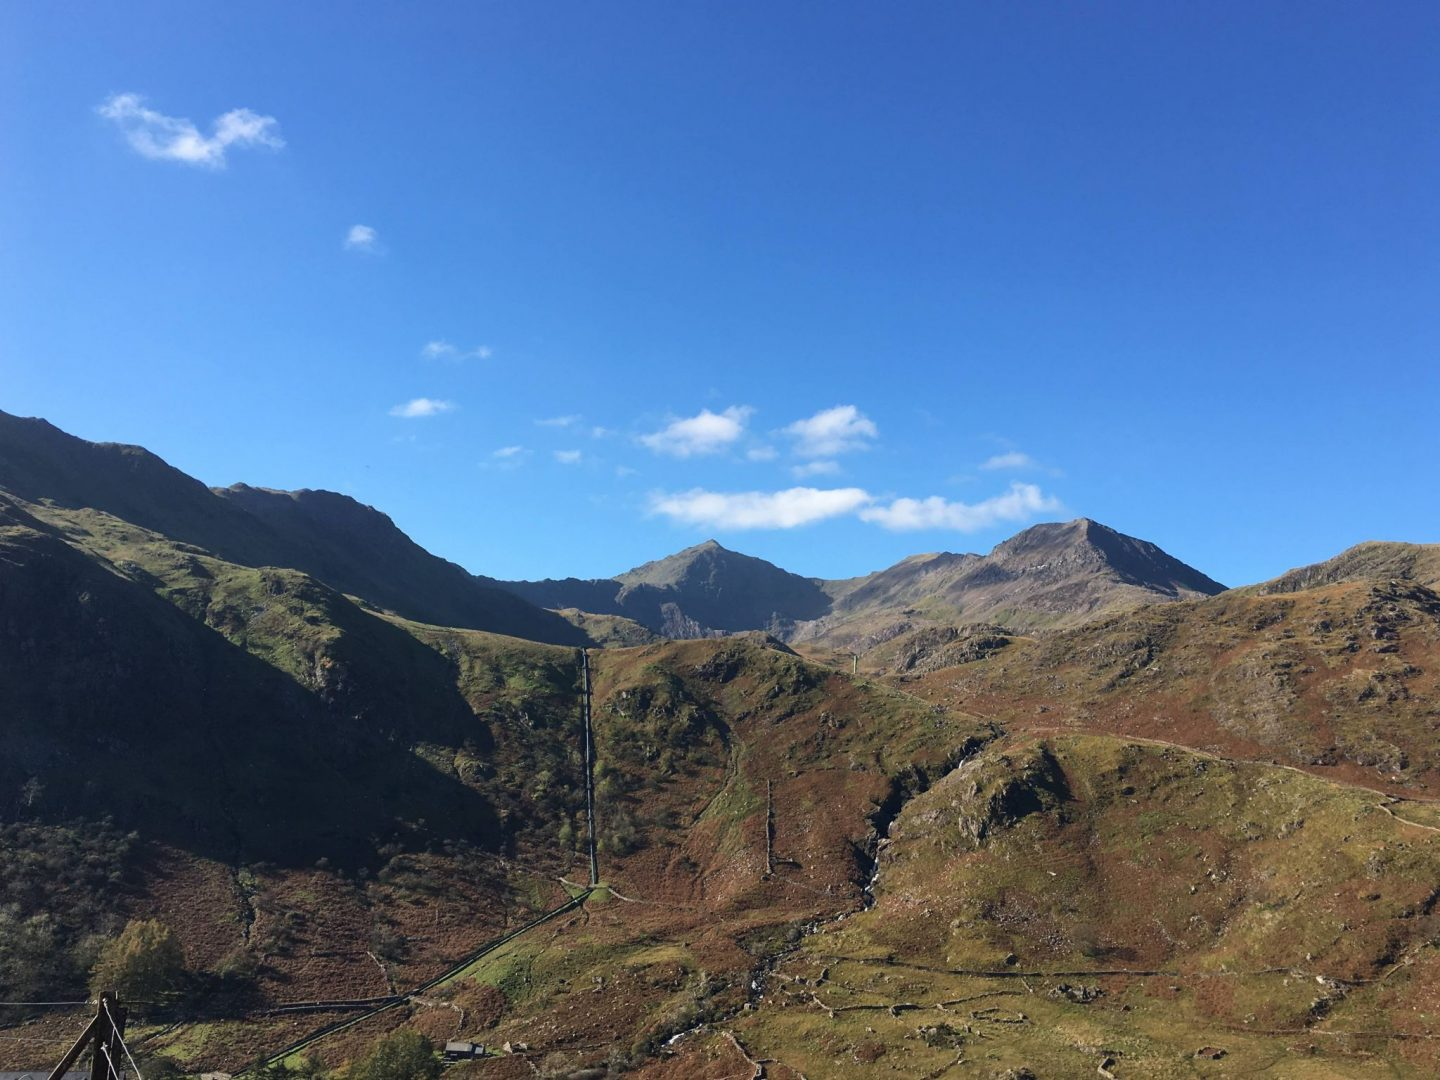 The Snowdon Horseshoe from the top of Nant Gwynant Pass